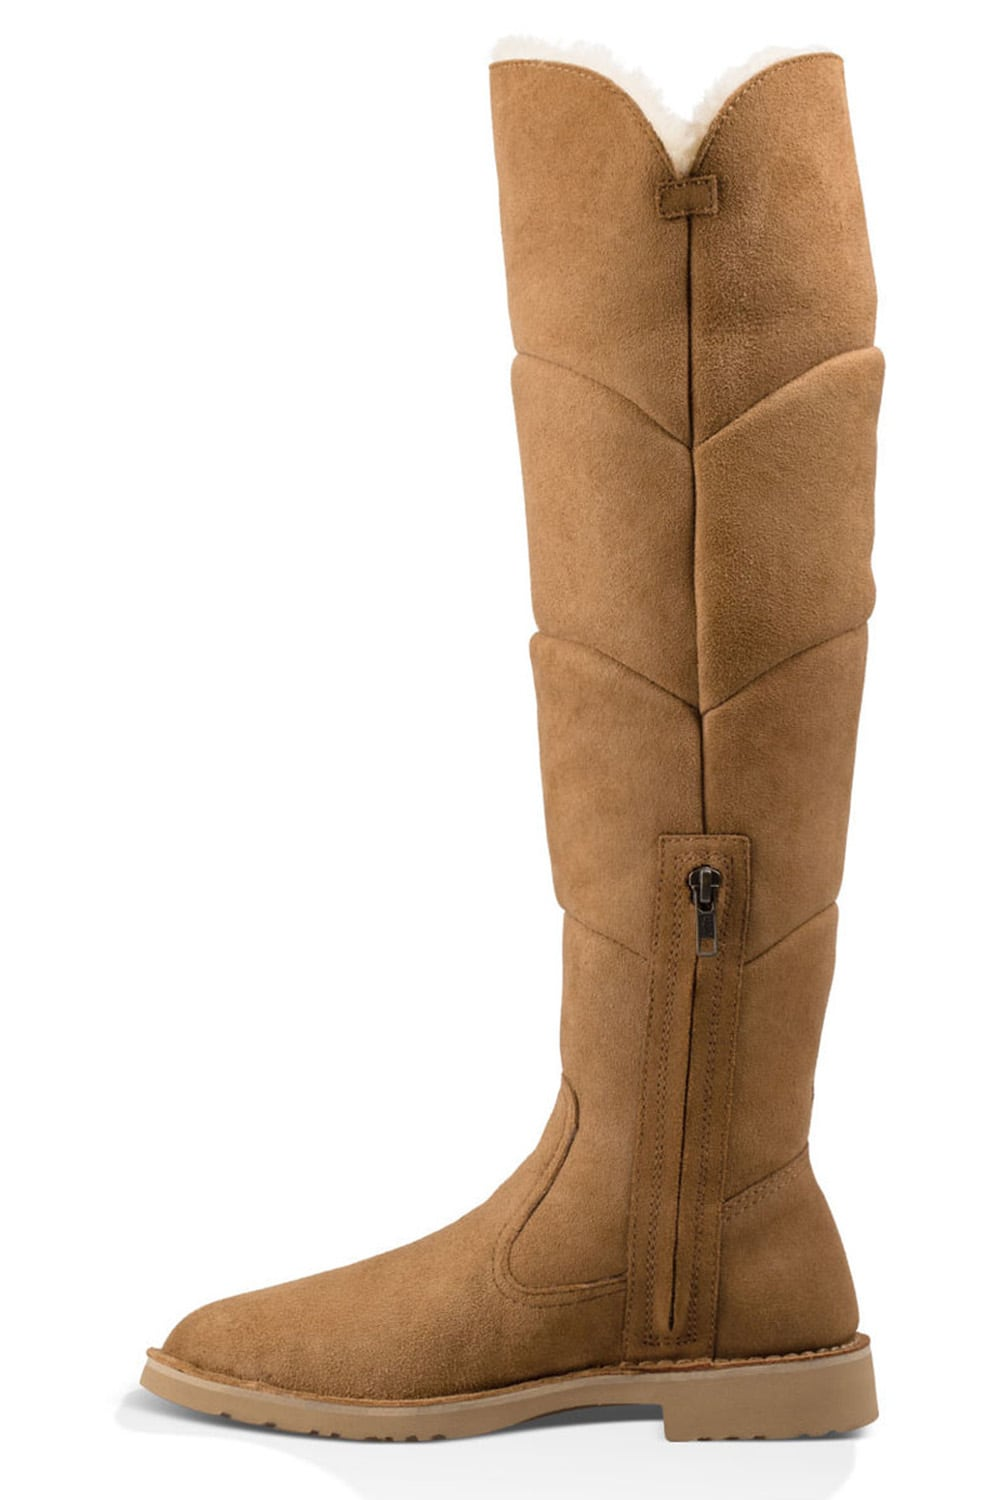 cheap uggs manufacturers